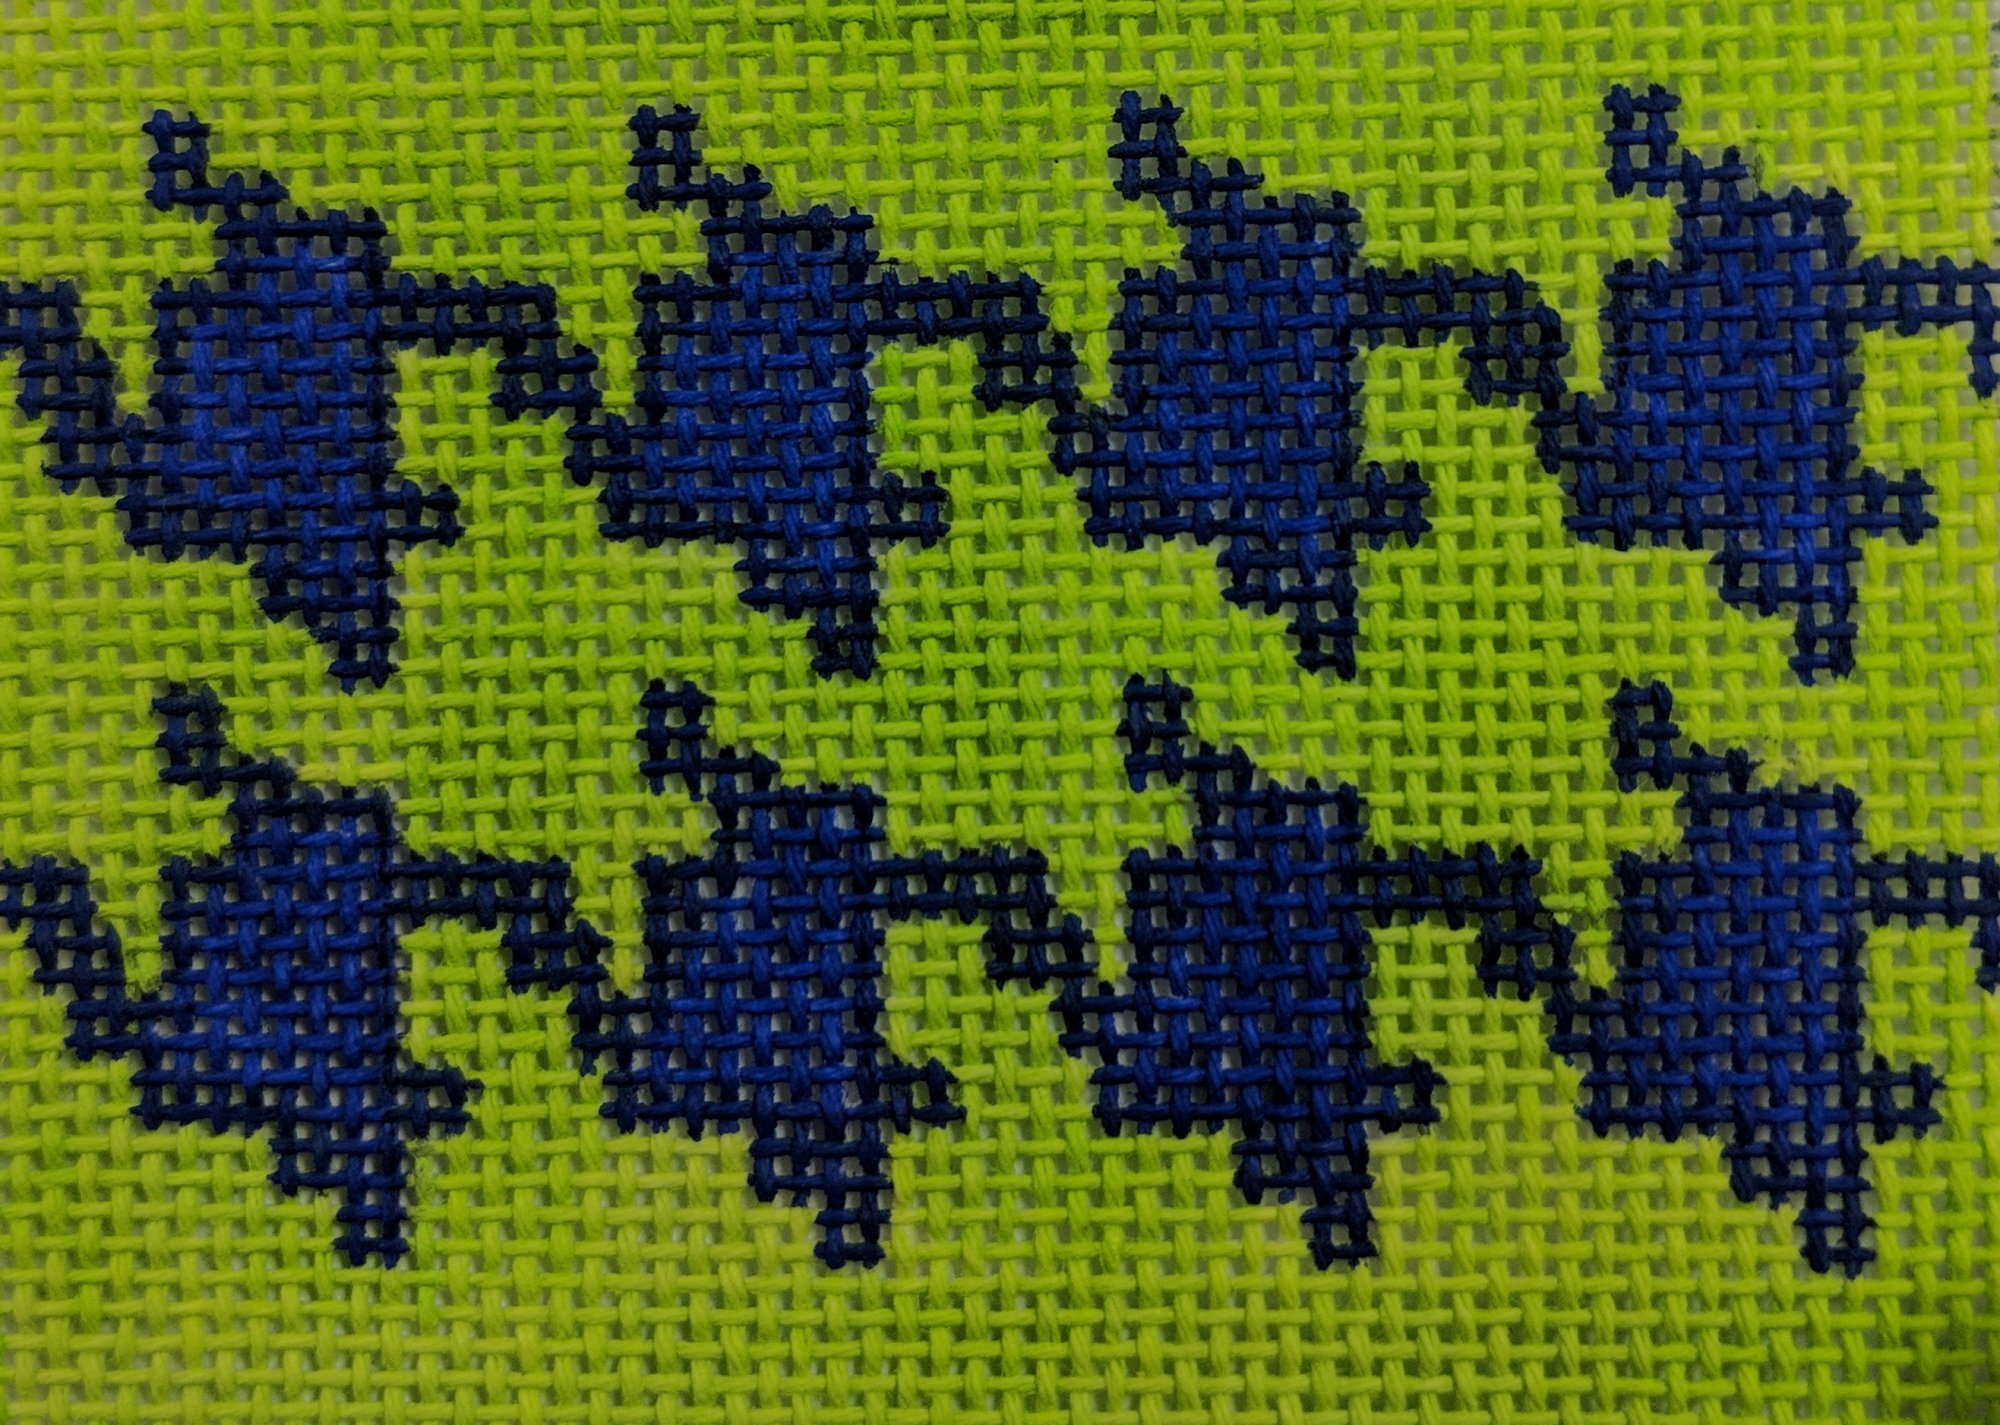 Periwinkle on Lime Houndstooth, Fits Self Finishing CCC, 18 ct., 2.5 x 3.25